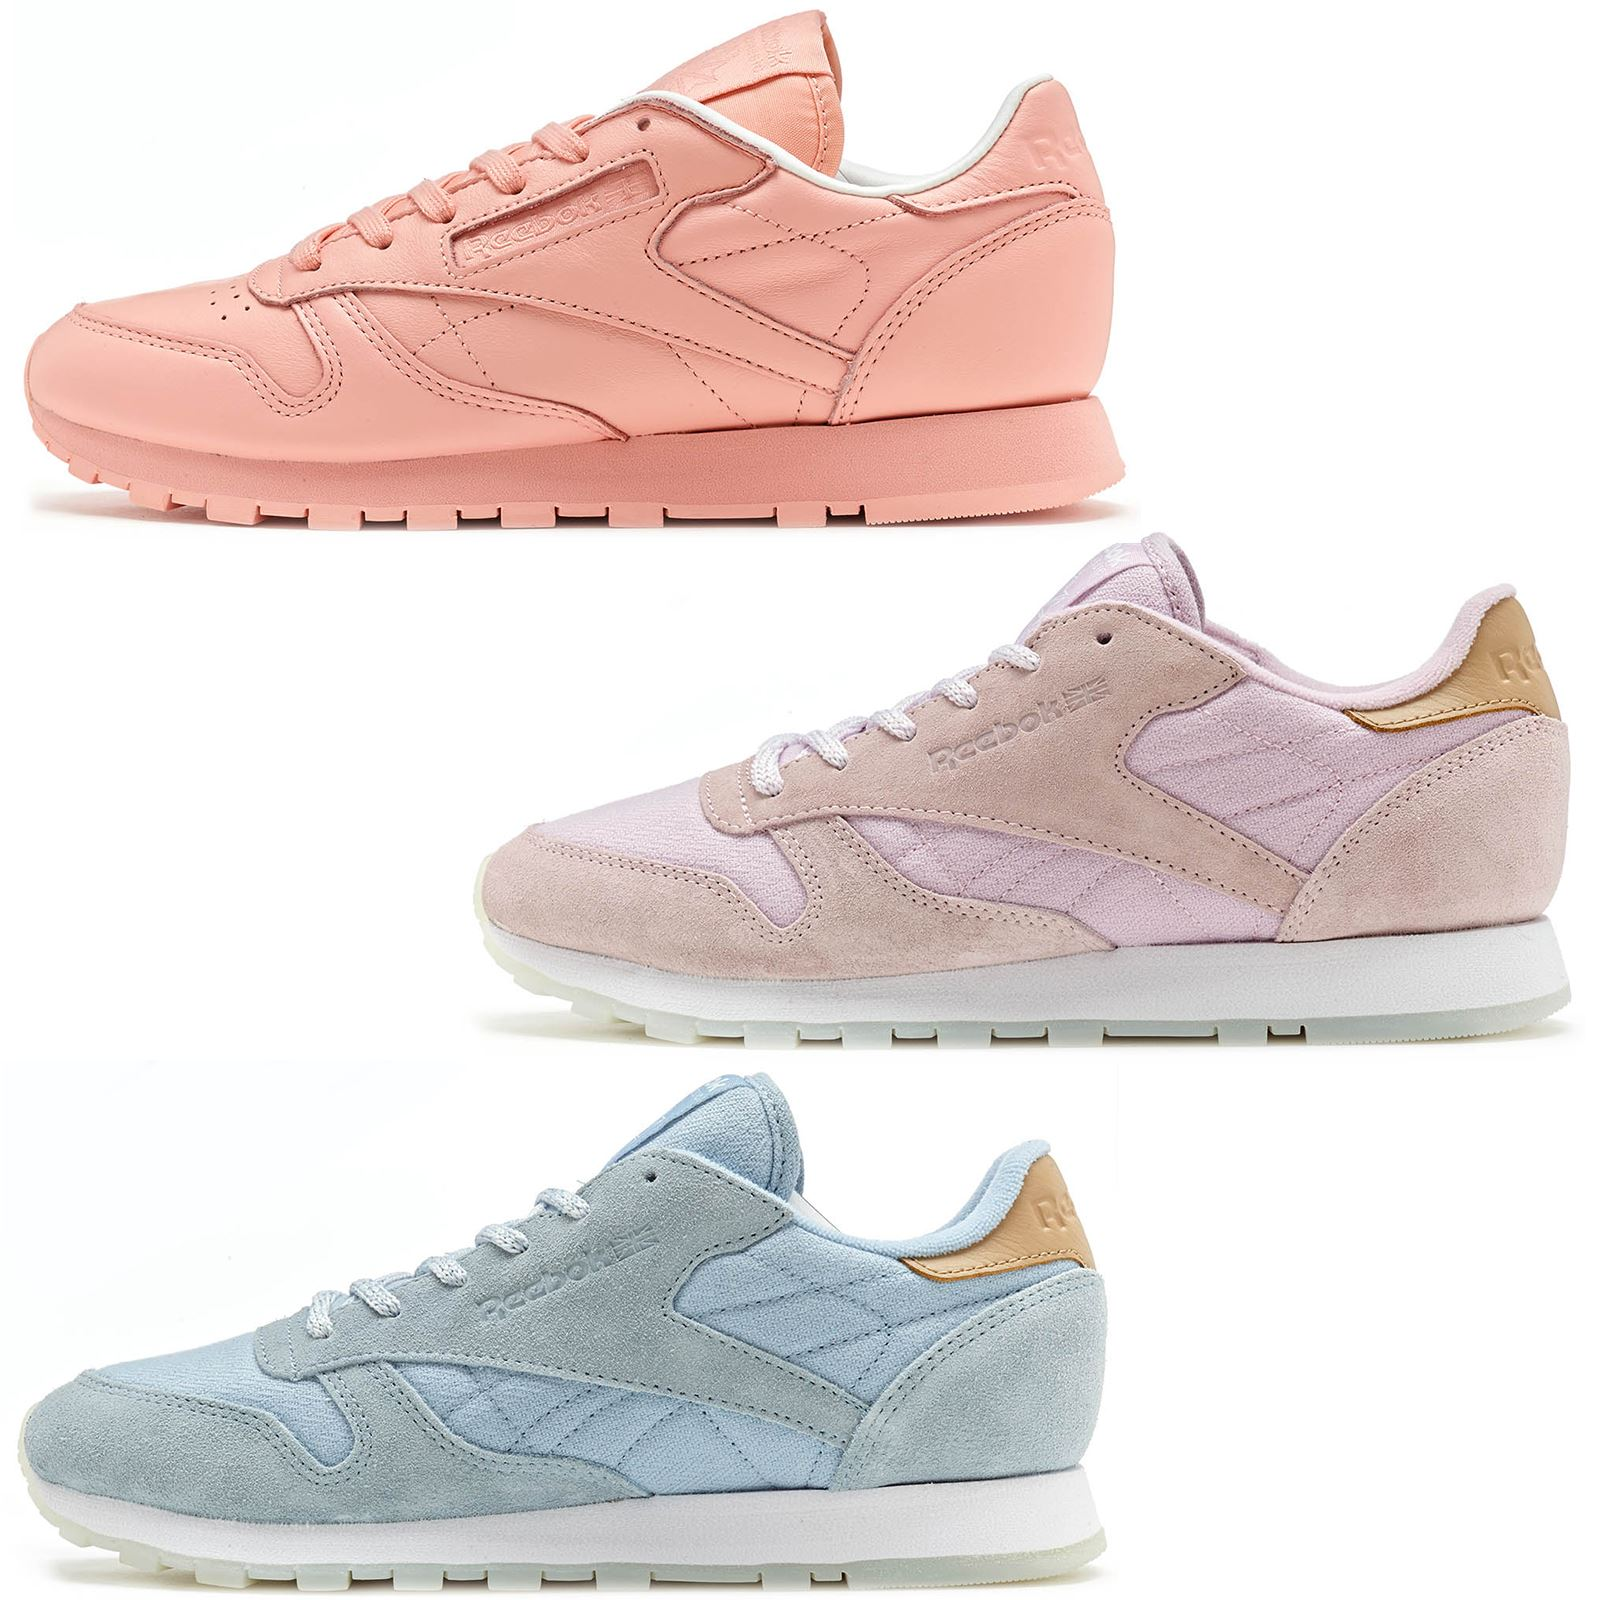 Details about Reebok Classic Leather Sea Worn & Spirit Classic Suede Women Trainers All Sizes